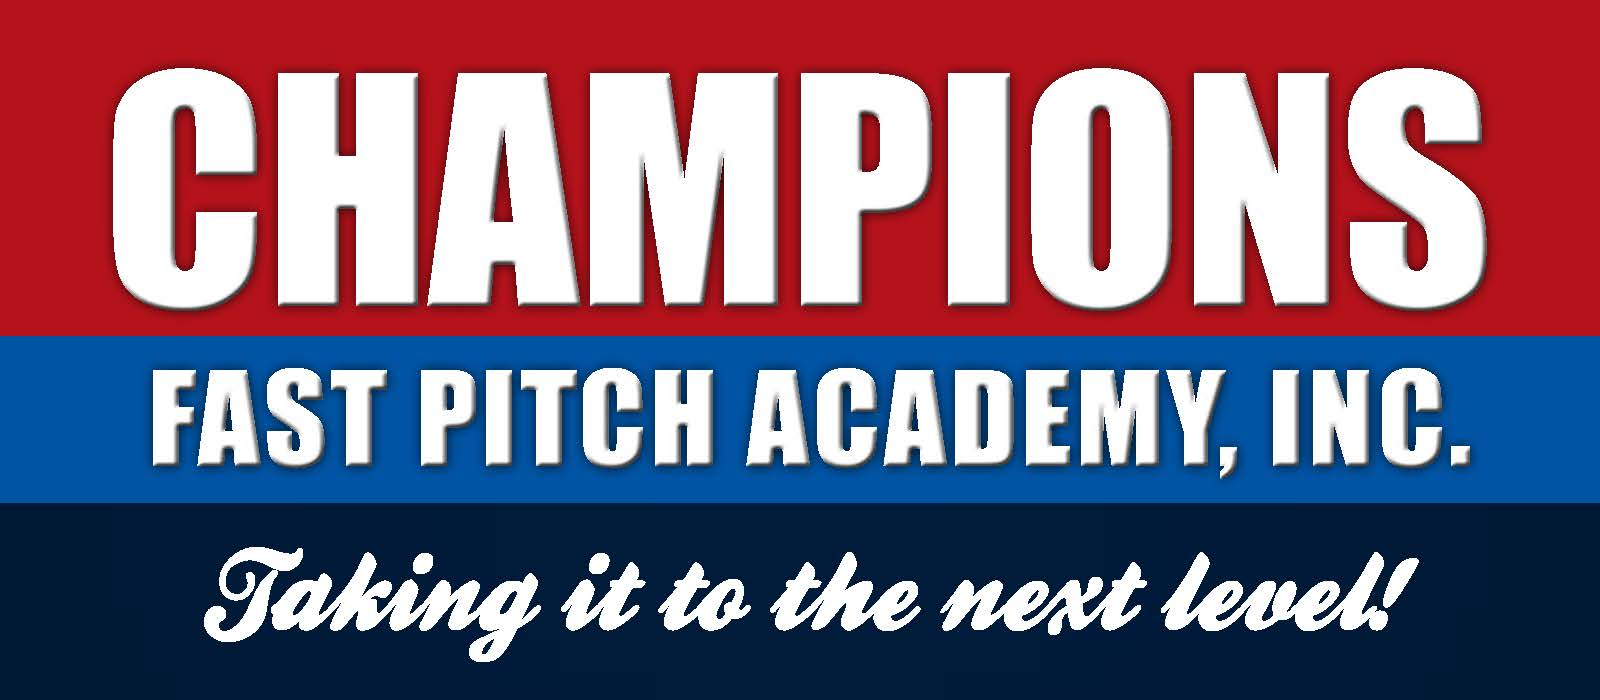 Champions Fastpitch Academy